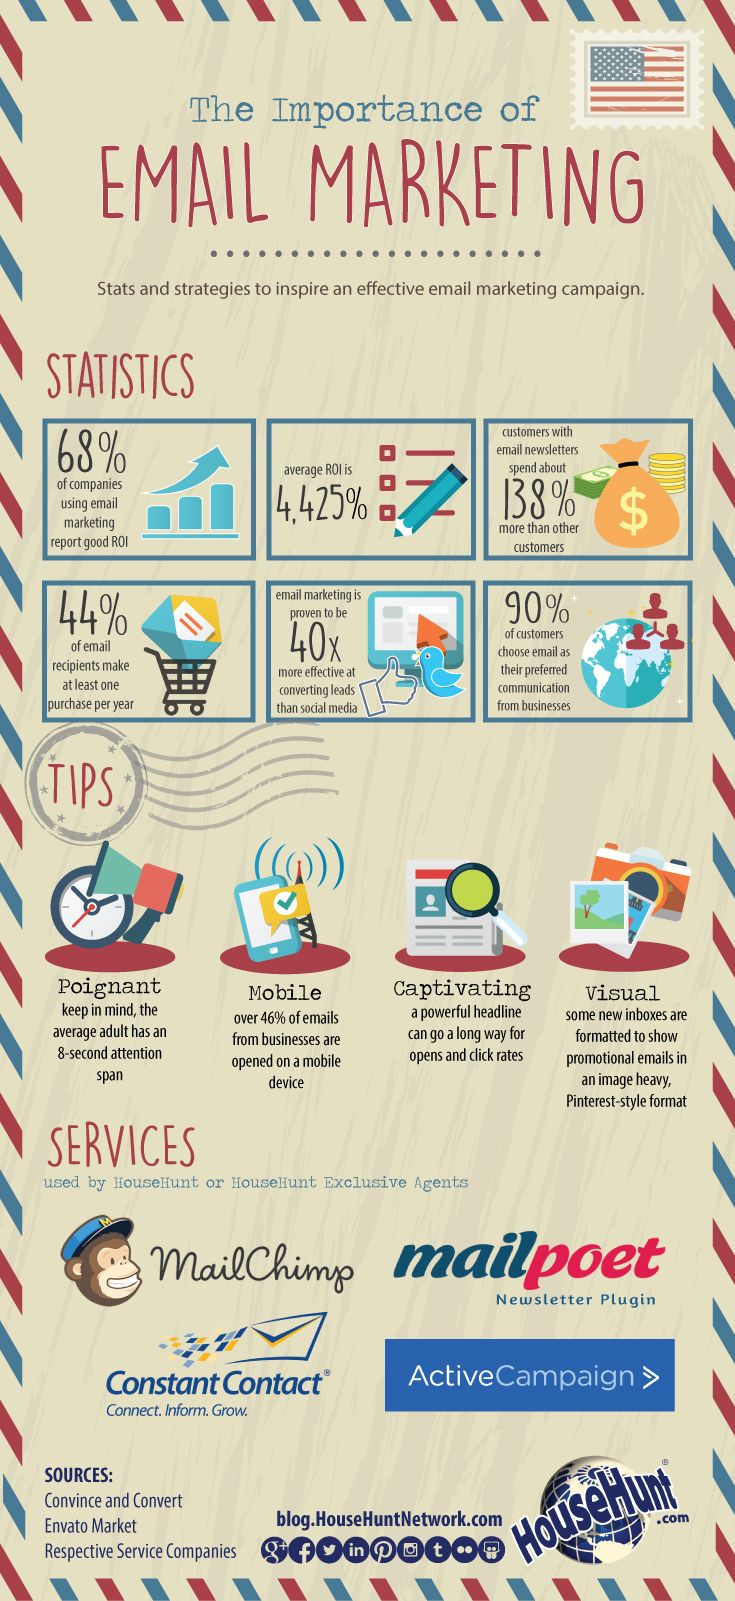 Here are the statistics and strategies that will inspire an effective email marketing campaign, plus the services that can get you started!